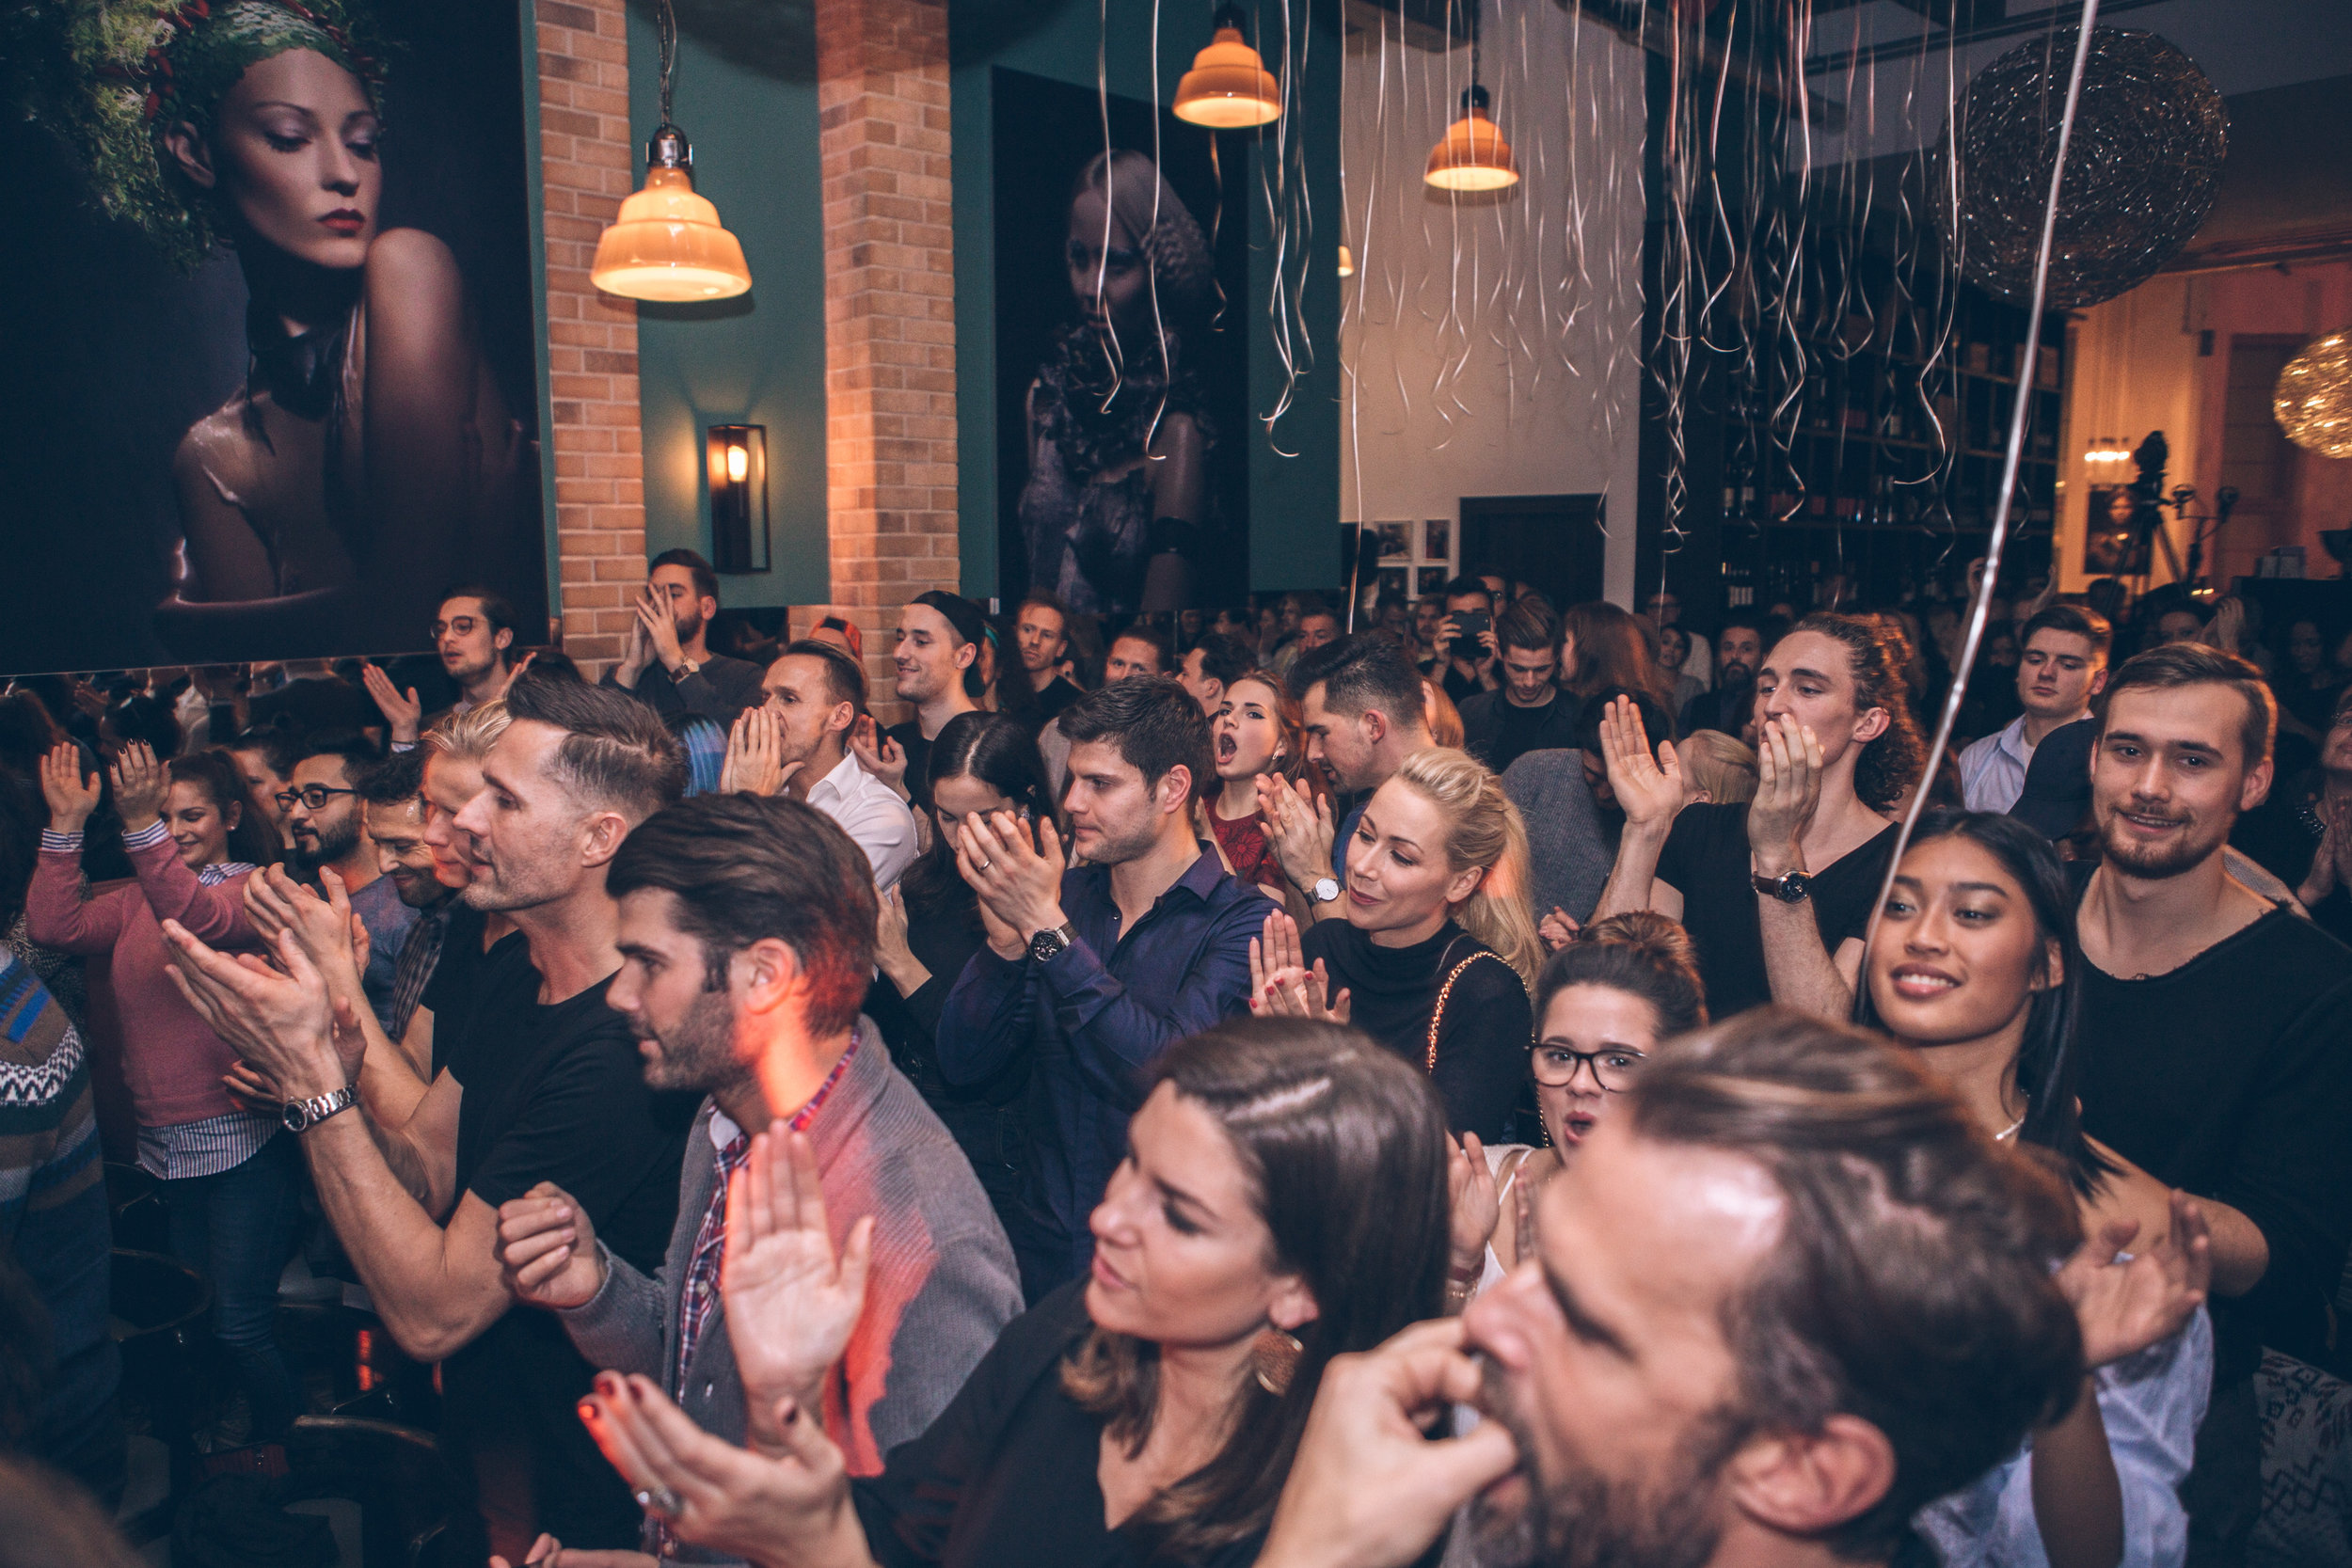 PrivateSoulFoodConcert-18.12.2016-Offenblende-169.jpg